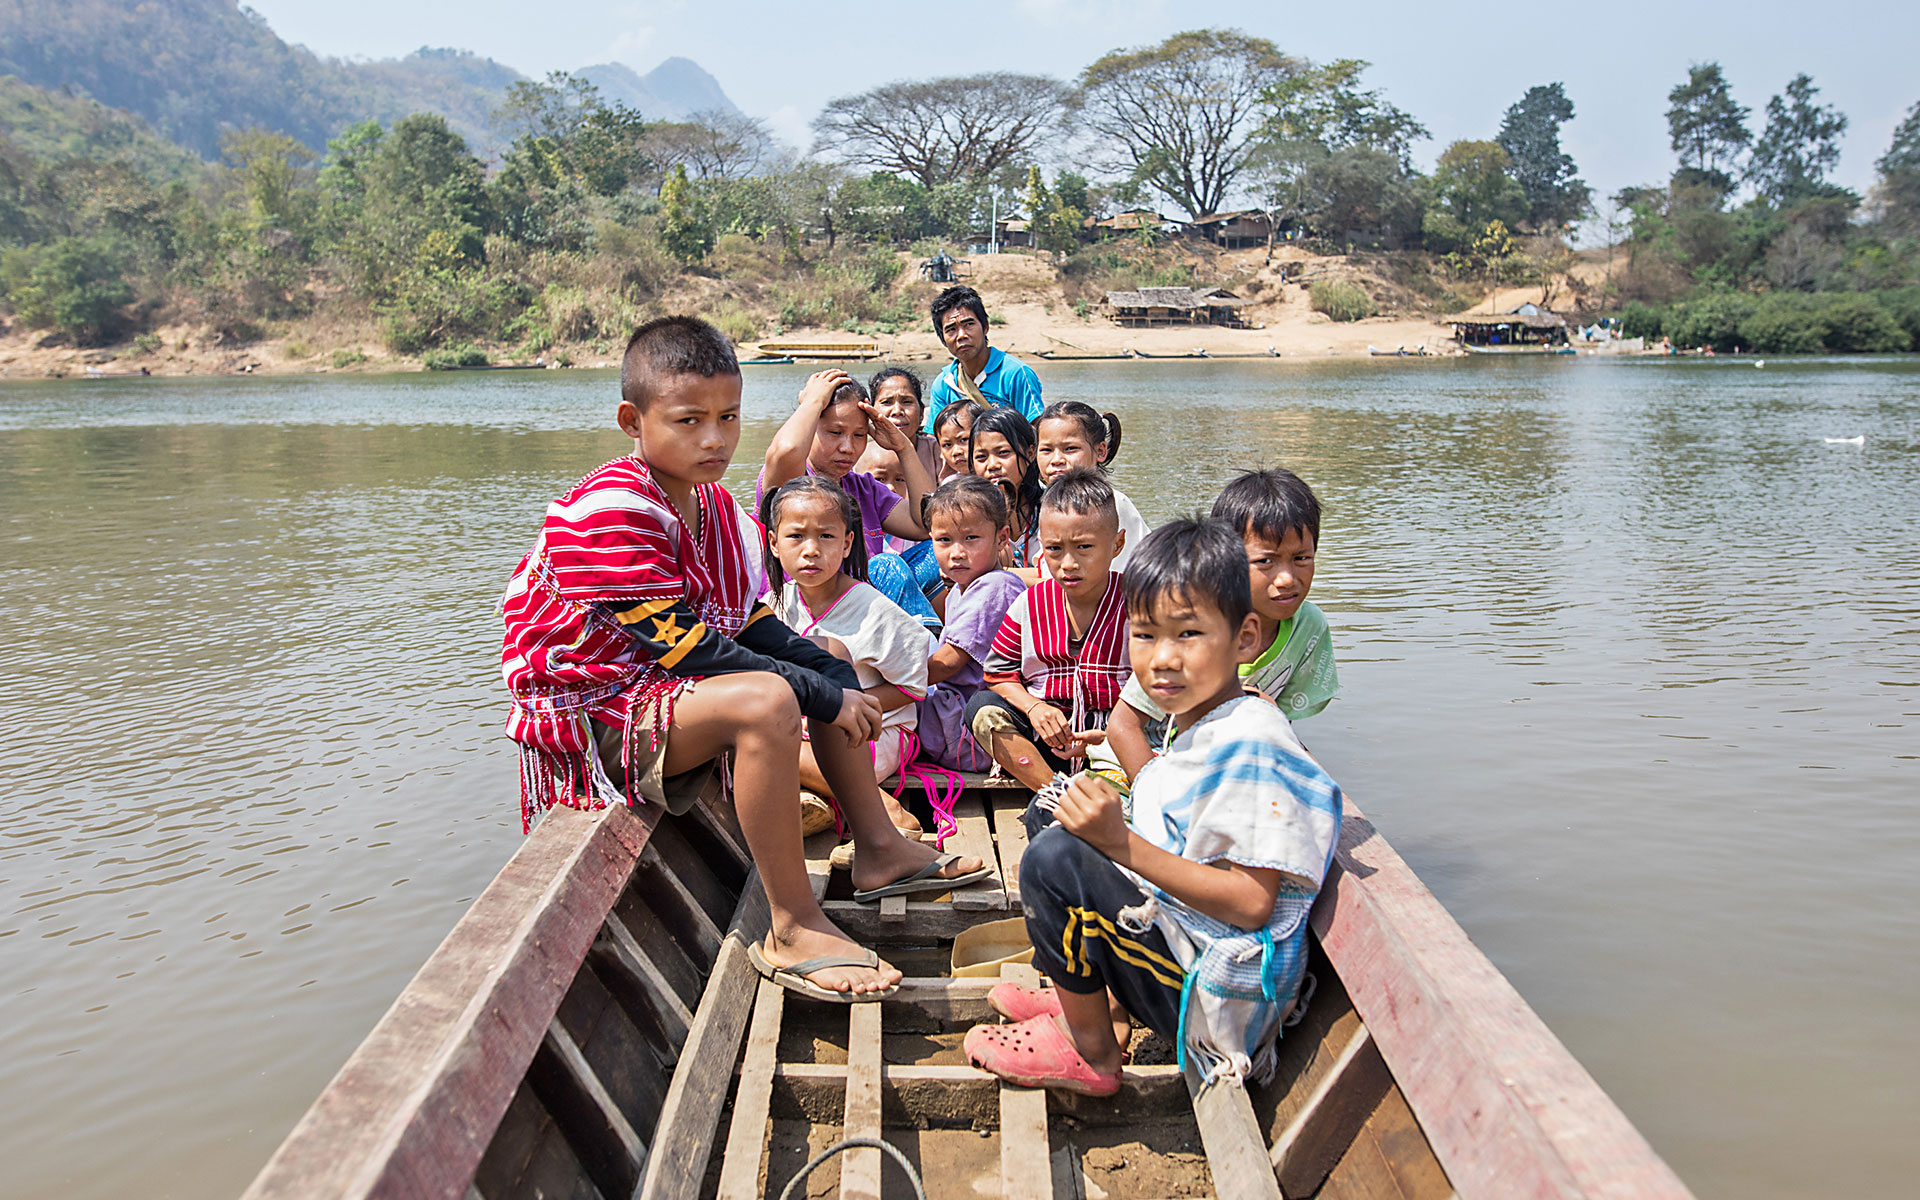 A large family and children sit in a small boat